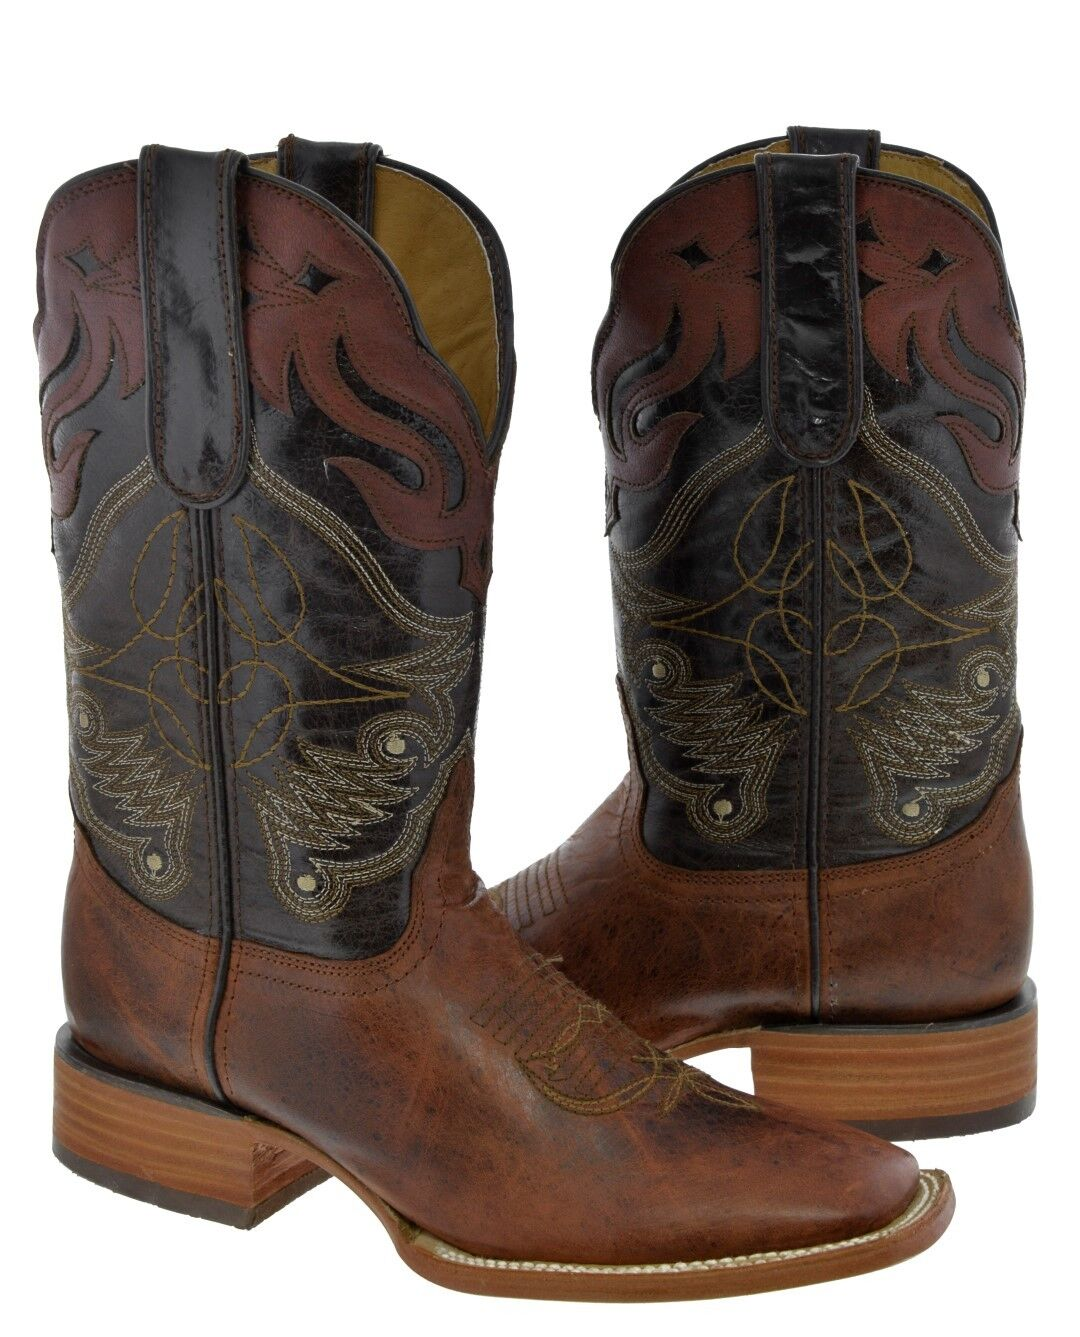 Mens Chedron Real Leather Cowboy Boots Cognac Overlay Stitched Rodeo Square